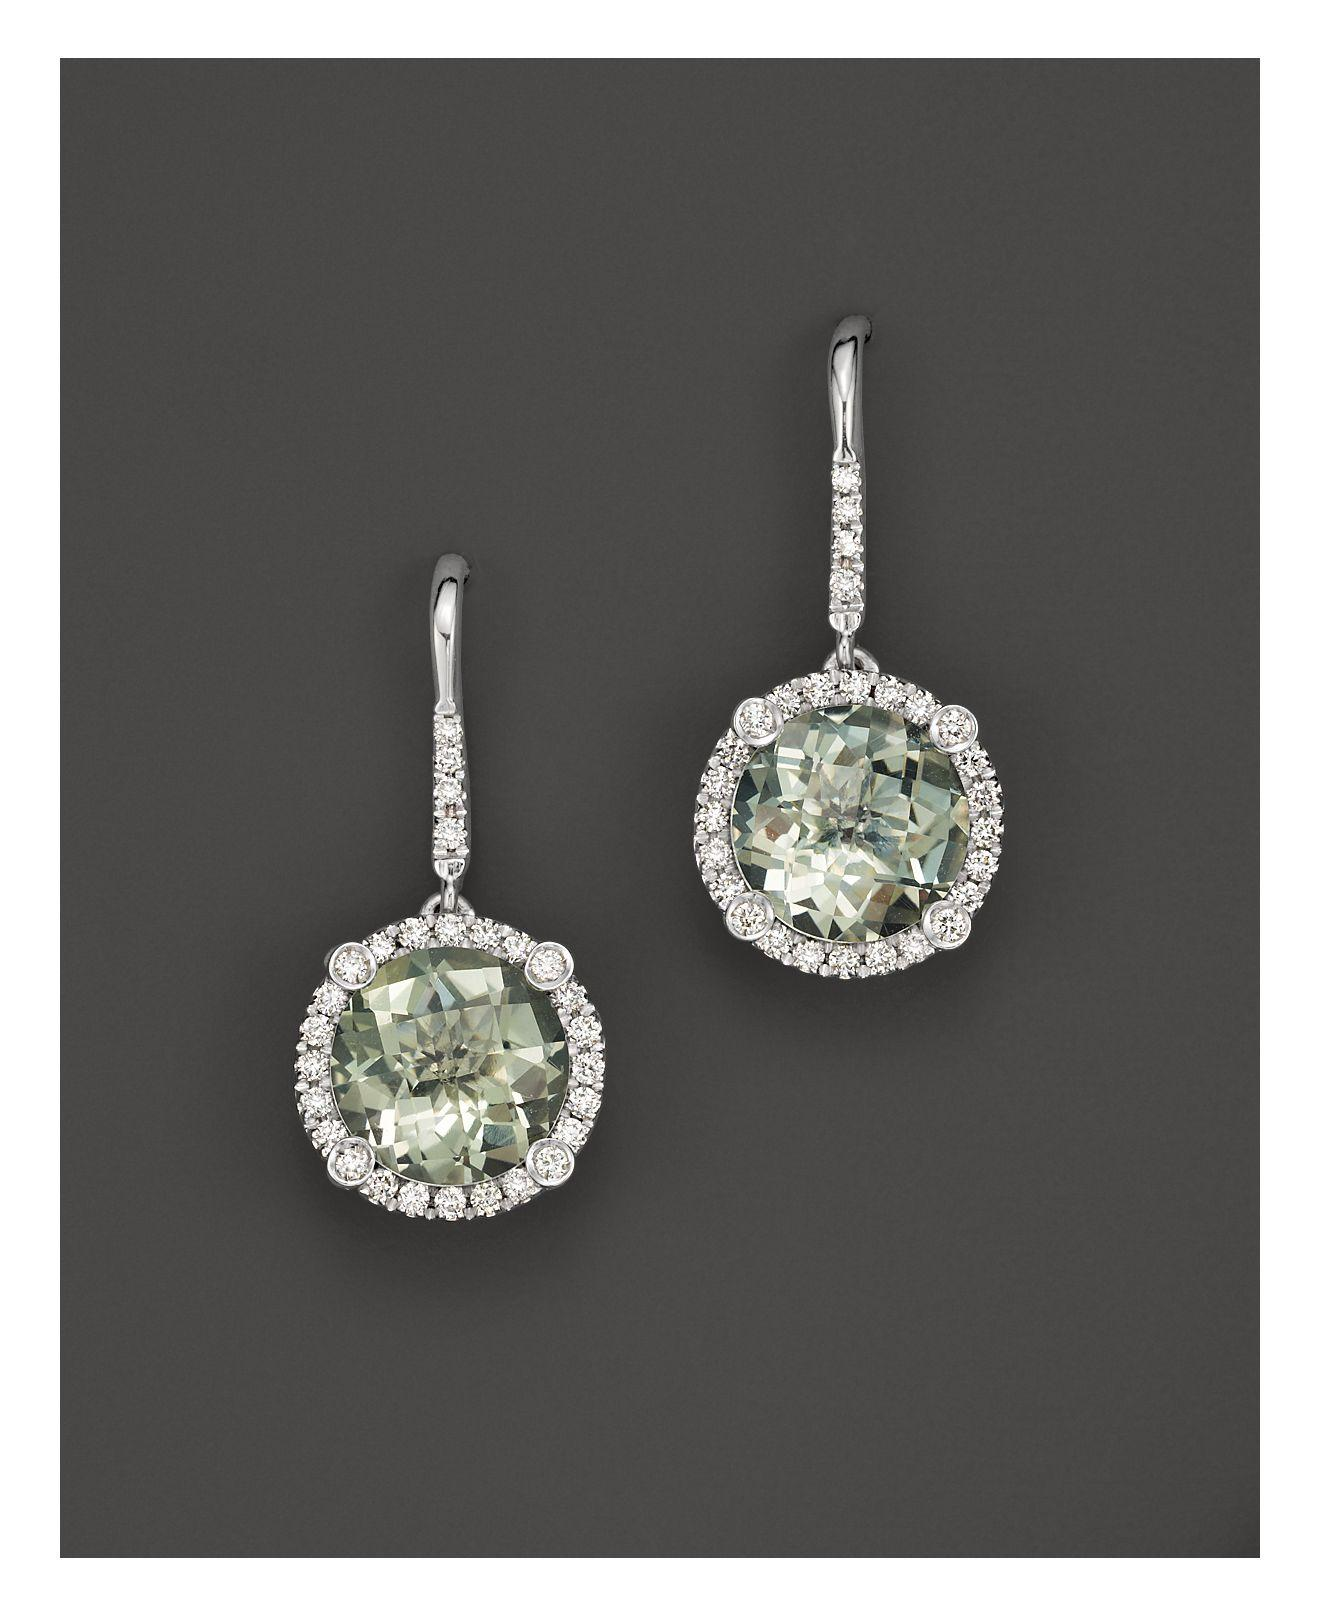 roberto coin 18k white gold and prasiolite drop earrings